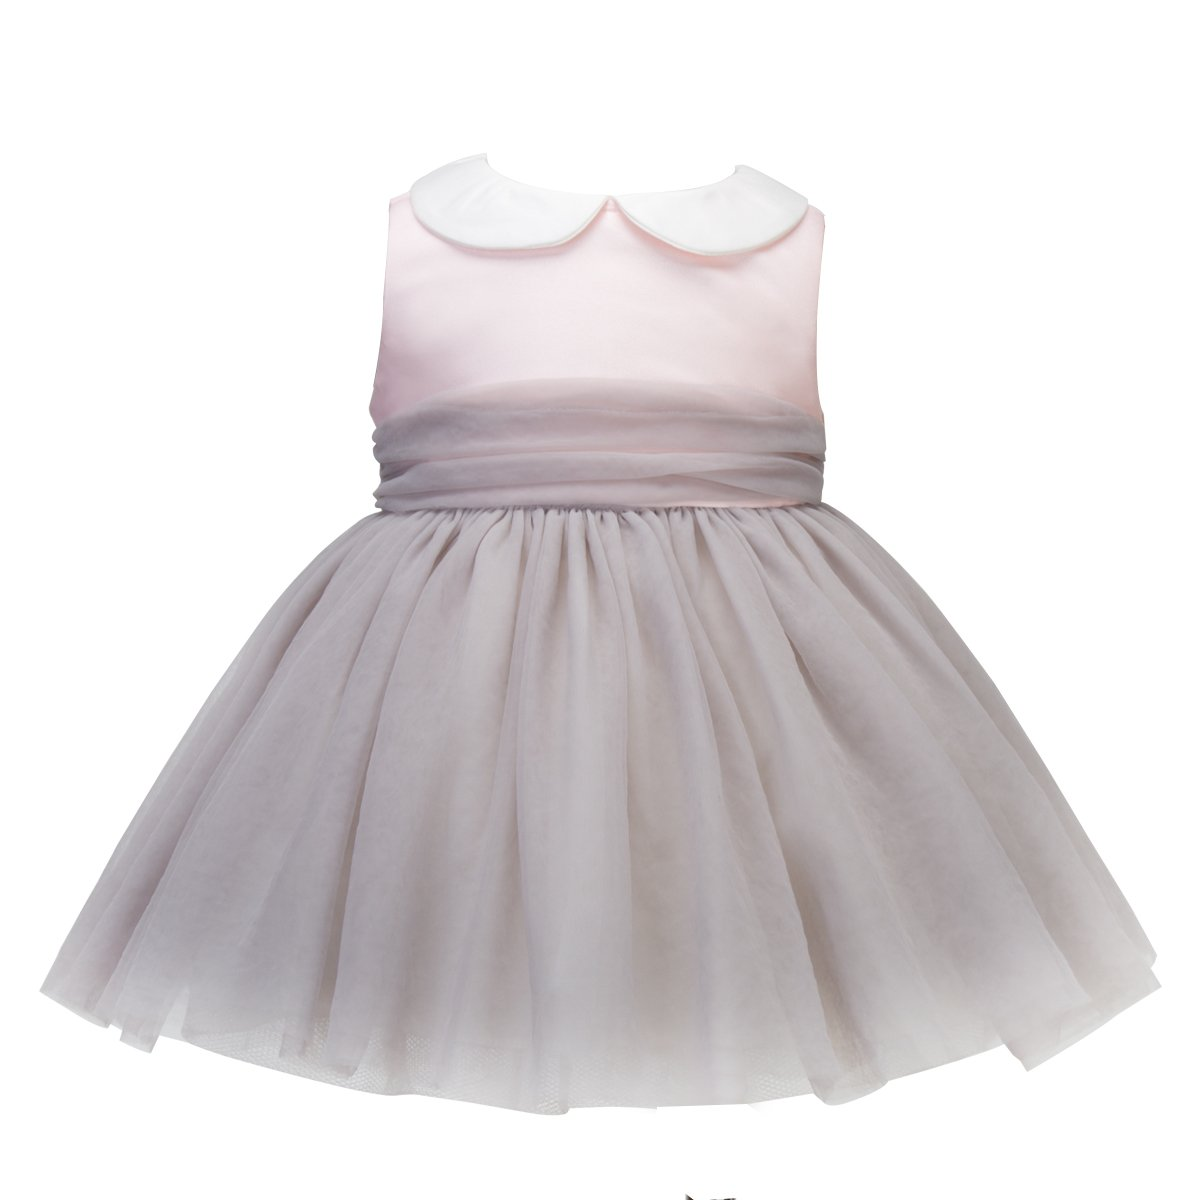 Mubenshang Toddler Dresses 3T Peach Baby Dresses 12-18 Months NB Dress for Girls Tulle Baby Dresses